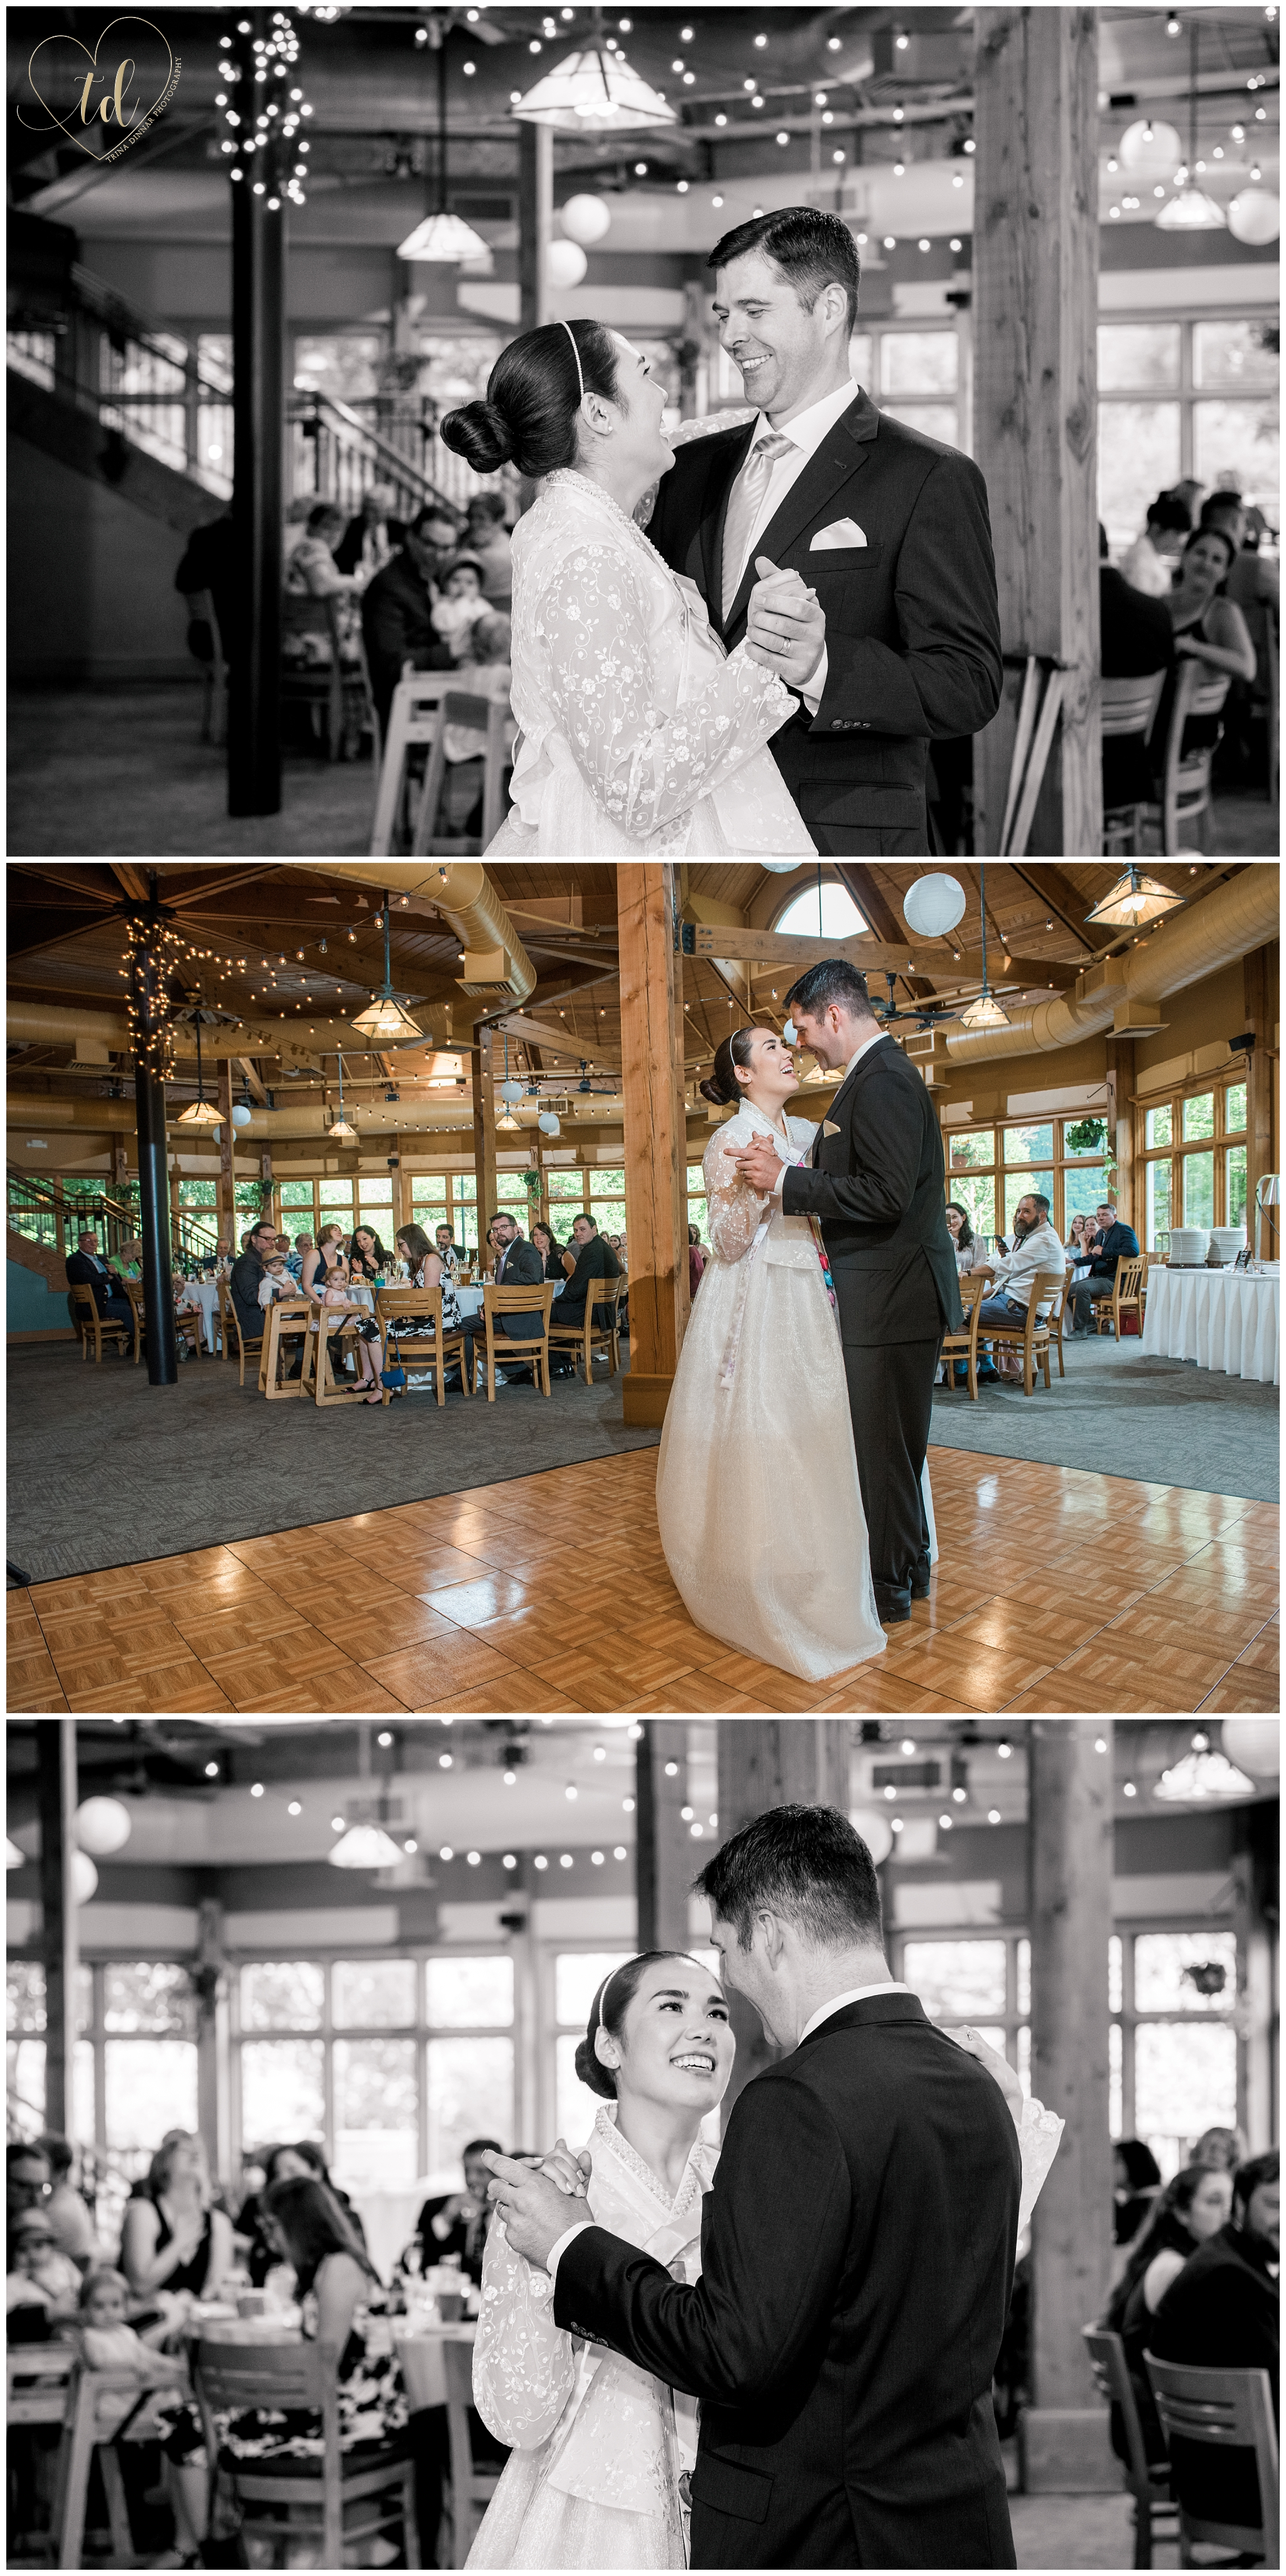 Wedding reception at Sliders Restaurant at Sunday River in Newry, ME.